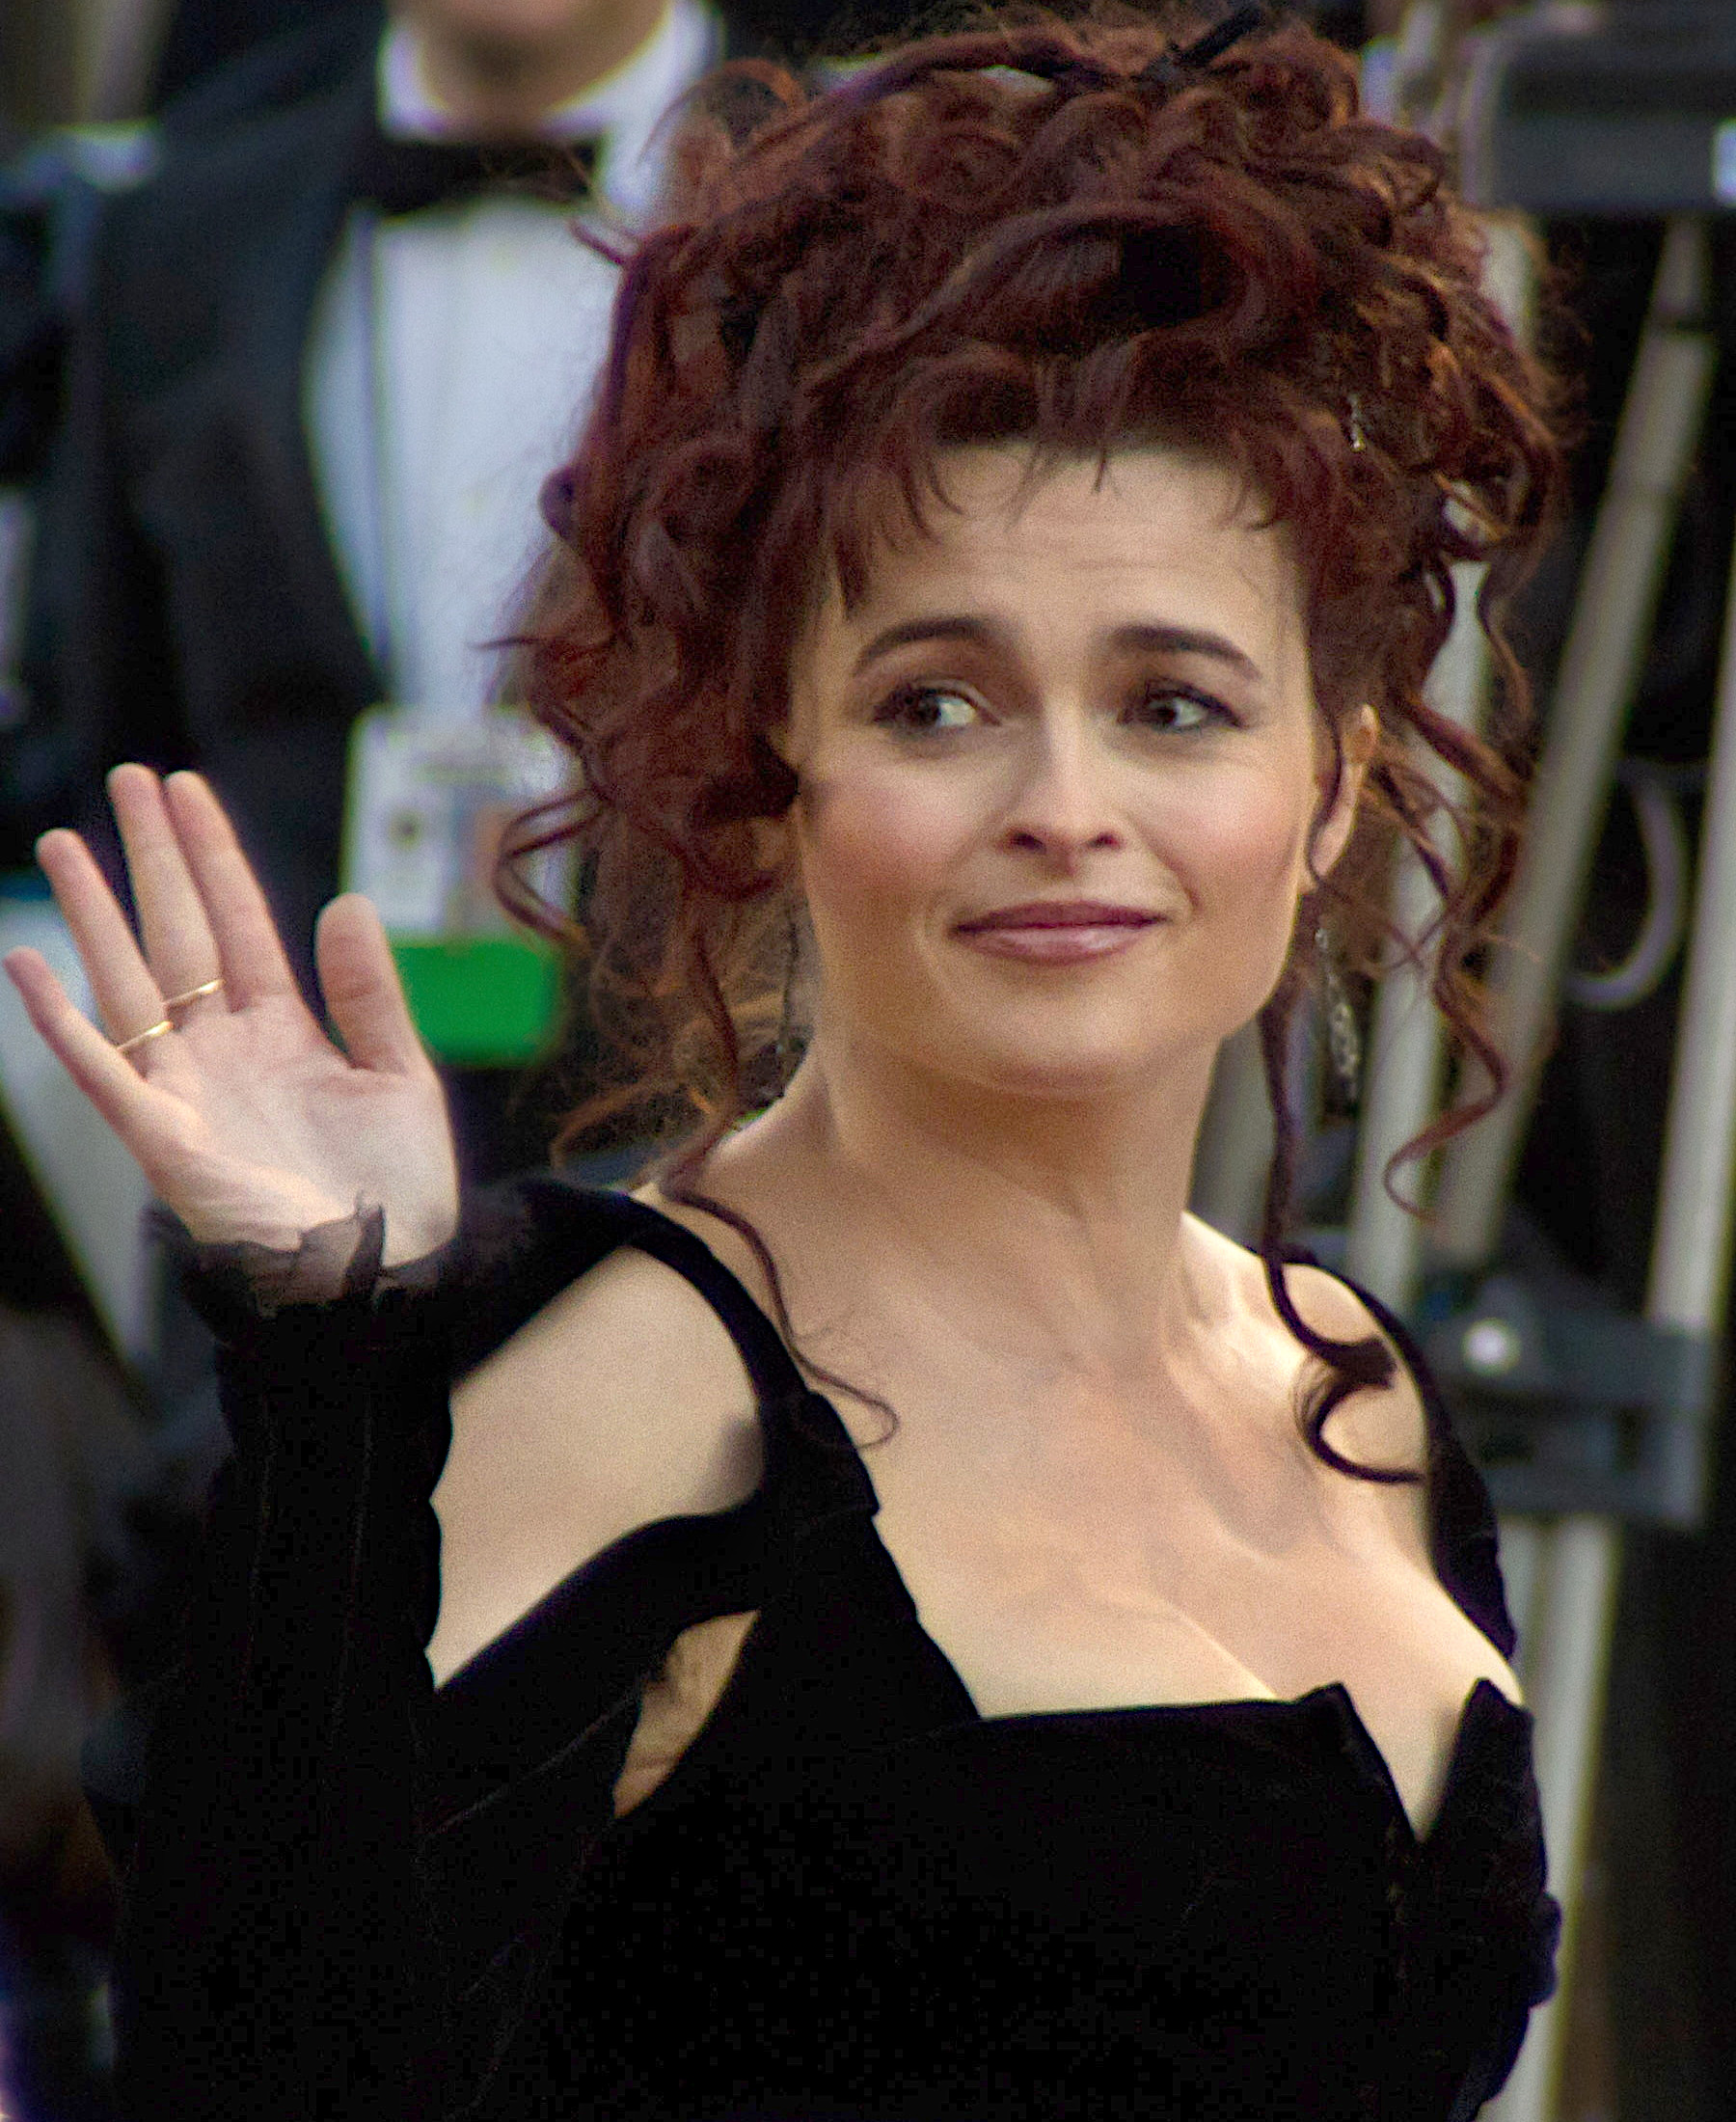 File:Helena Bonham Carter 2011 AA.jpg - Wikipedia, the ... Helena Bonham Carter Wikipedia